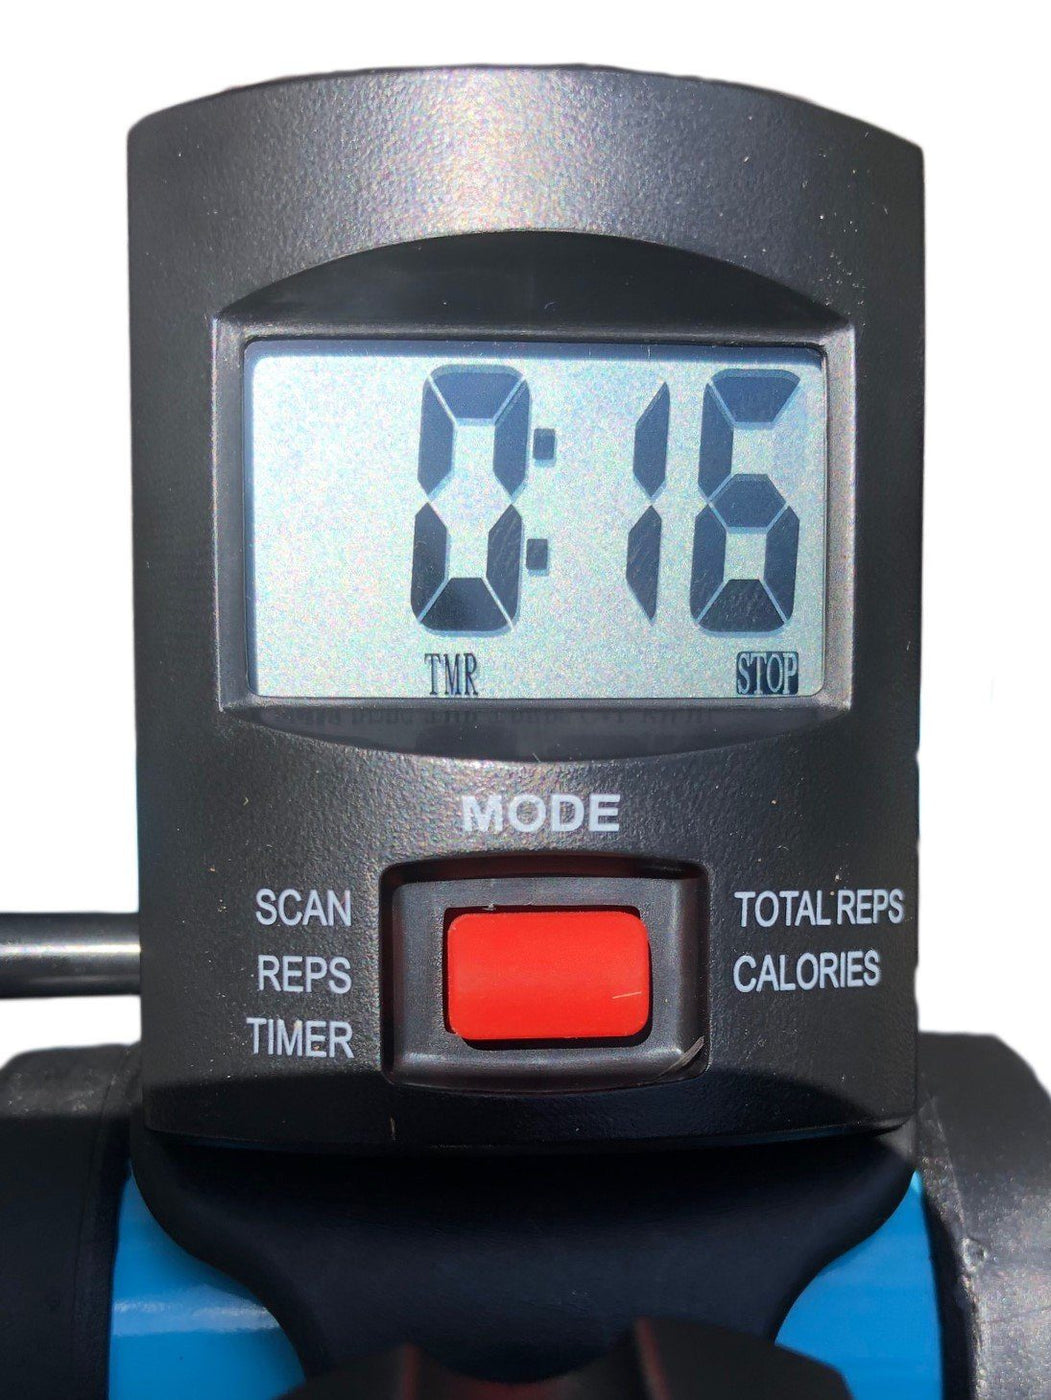 Pedal Exerciser - 5 function LCD display for accurate feedback on all workout parameters